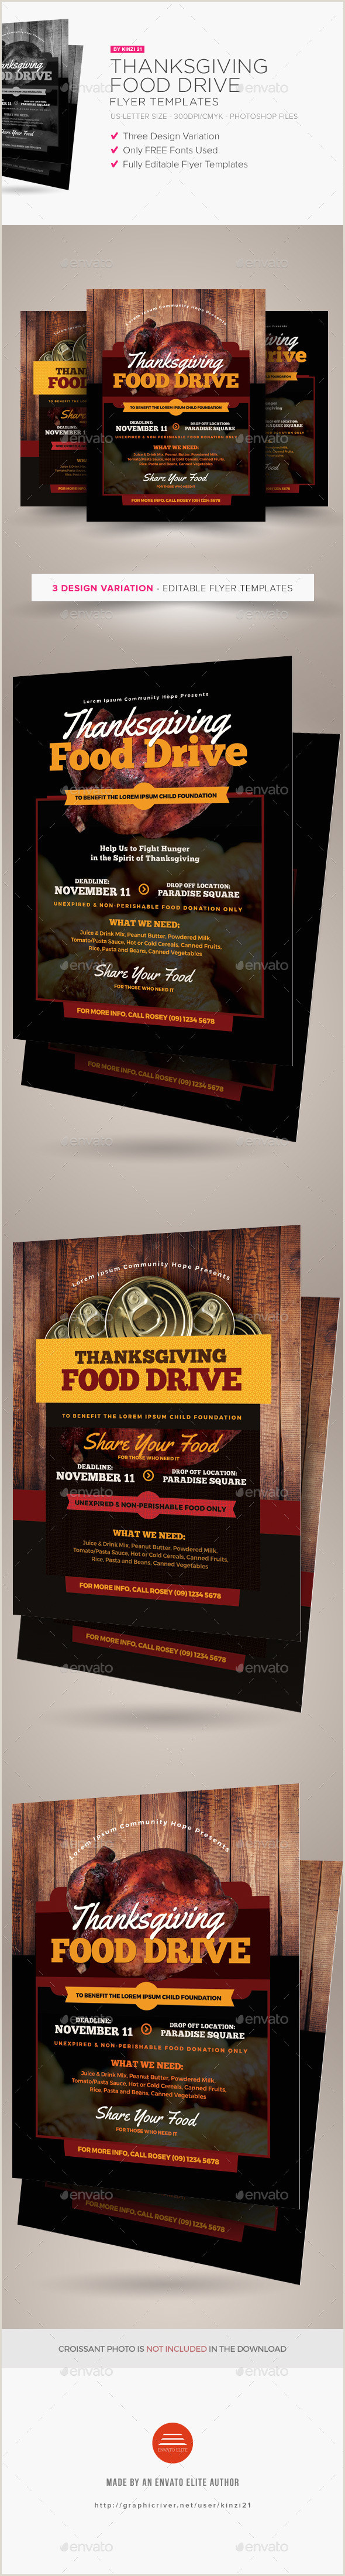 Donation and Event Graphics Designs & Templates Page 4